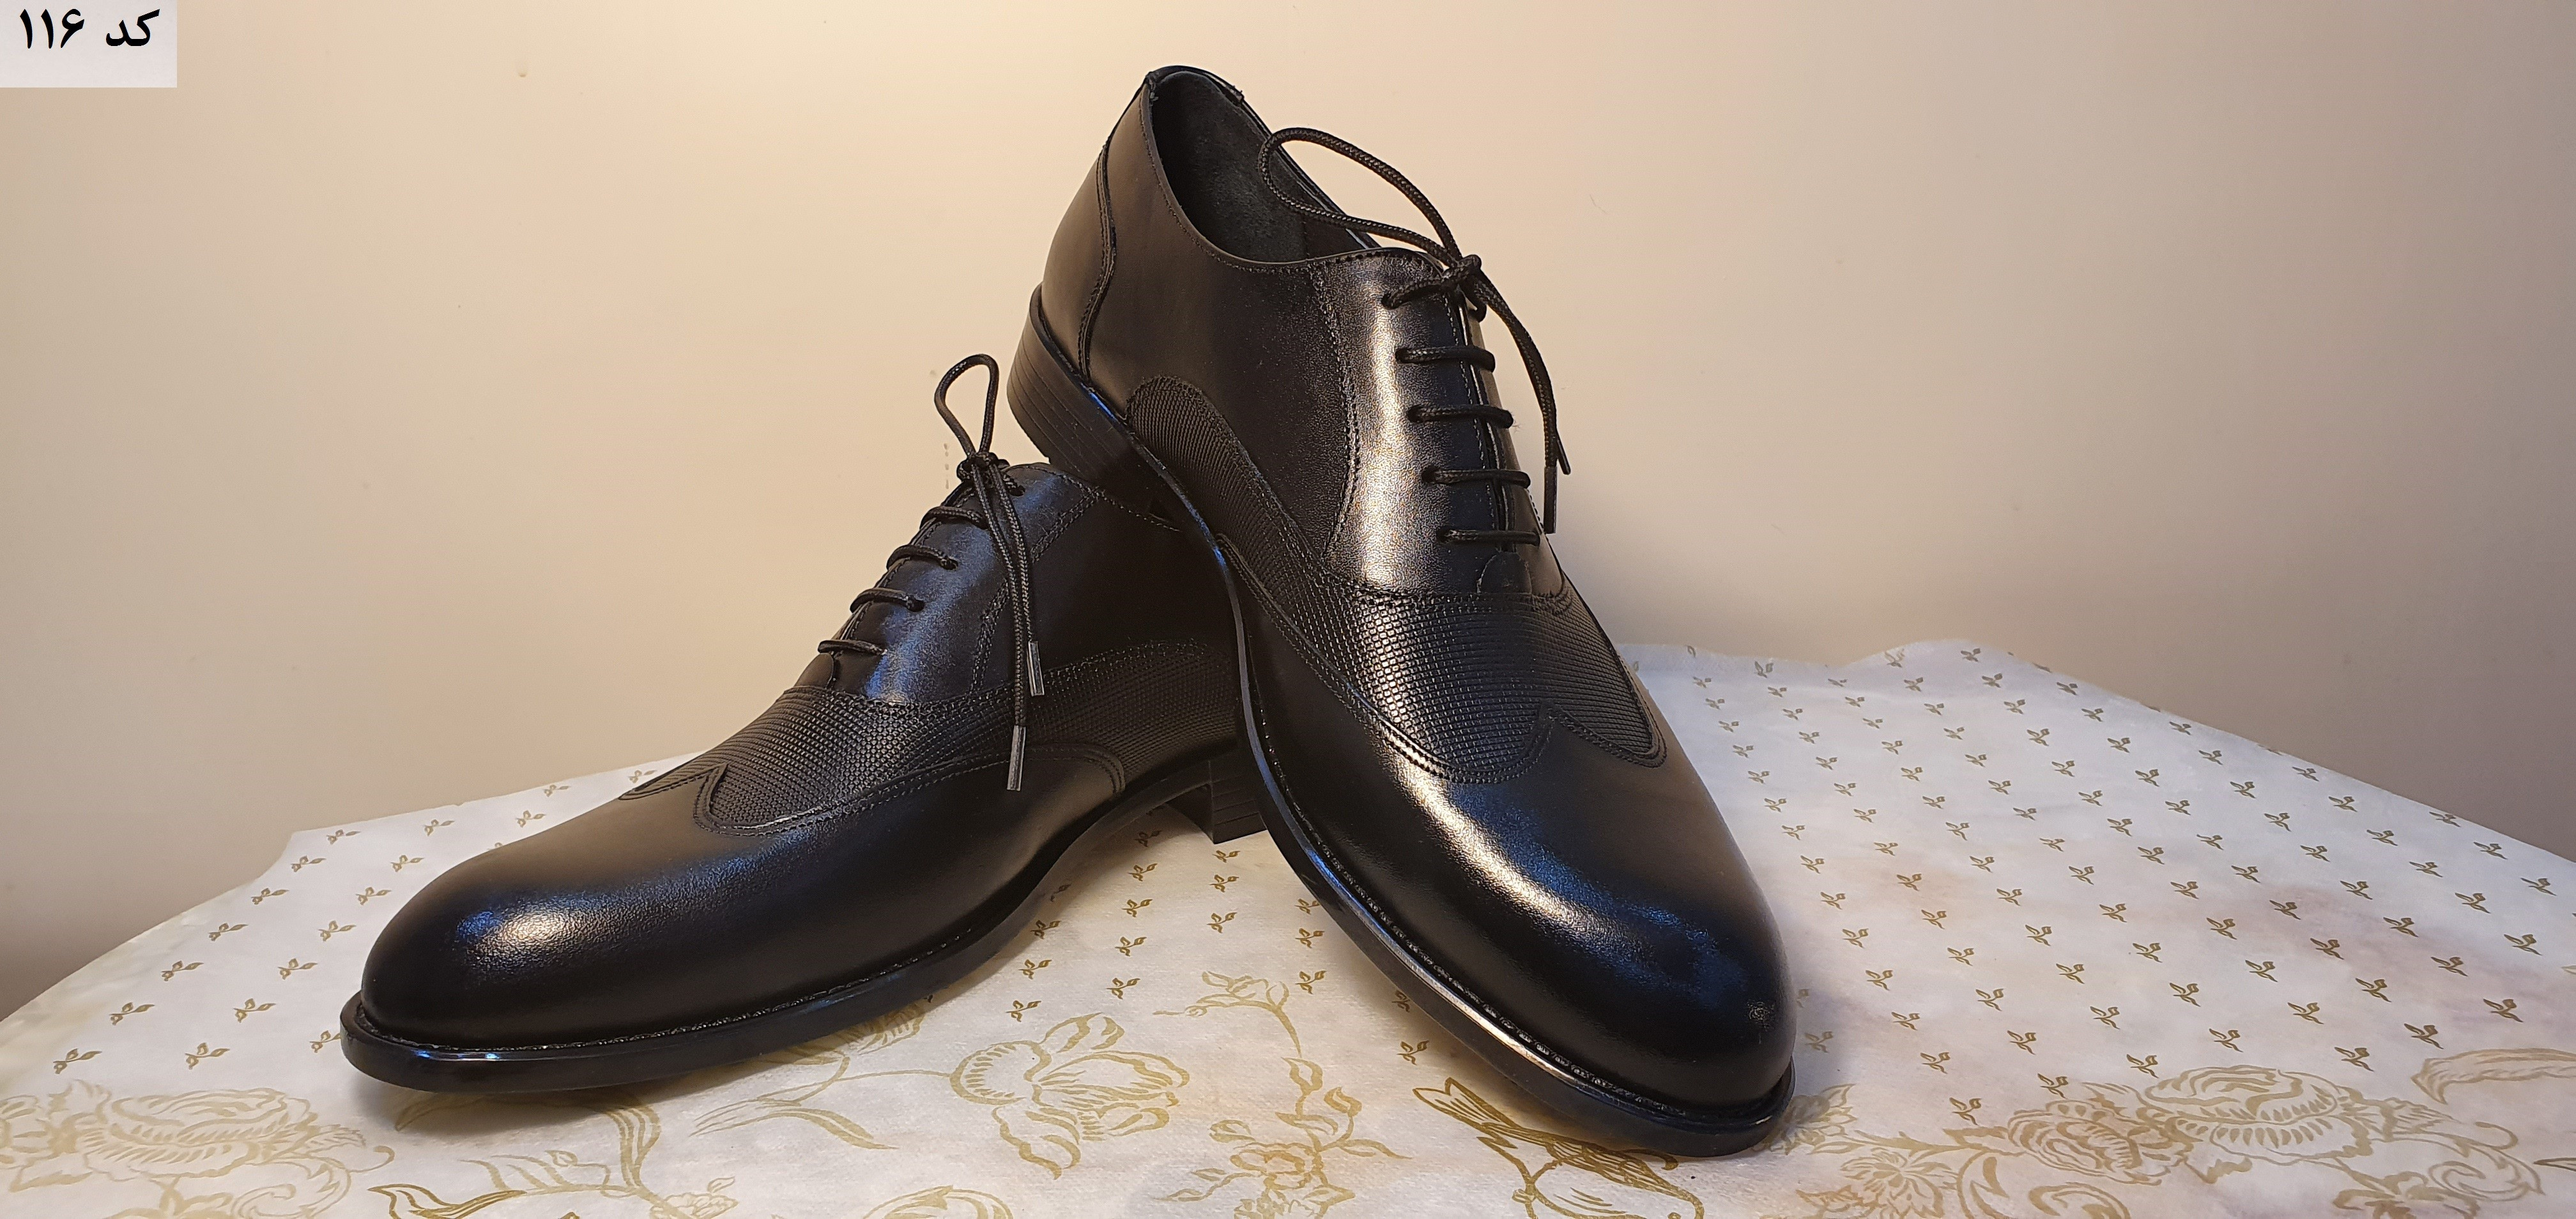 products  Turan classic shoes code 116